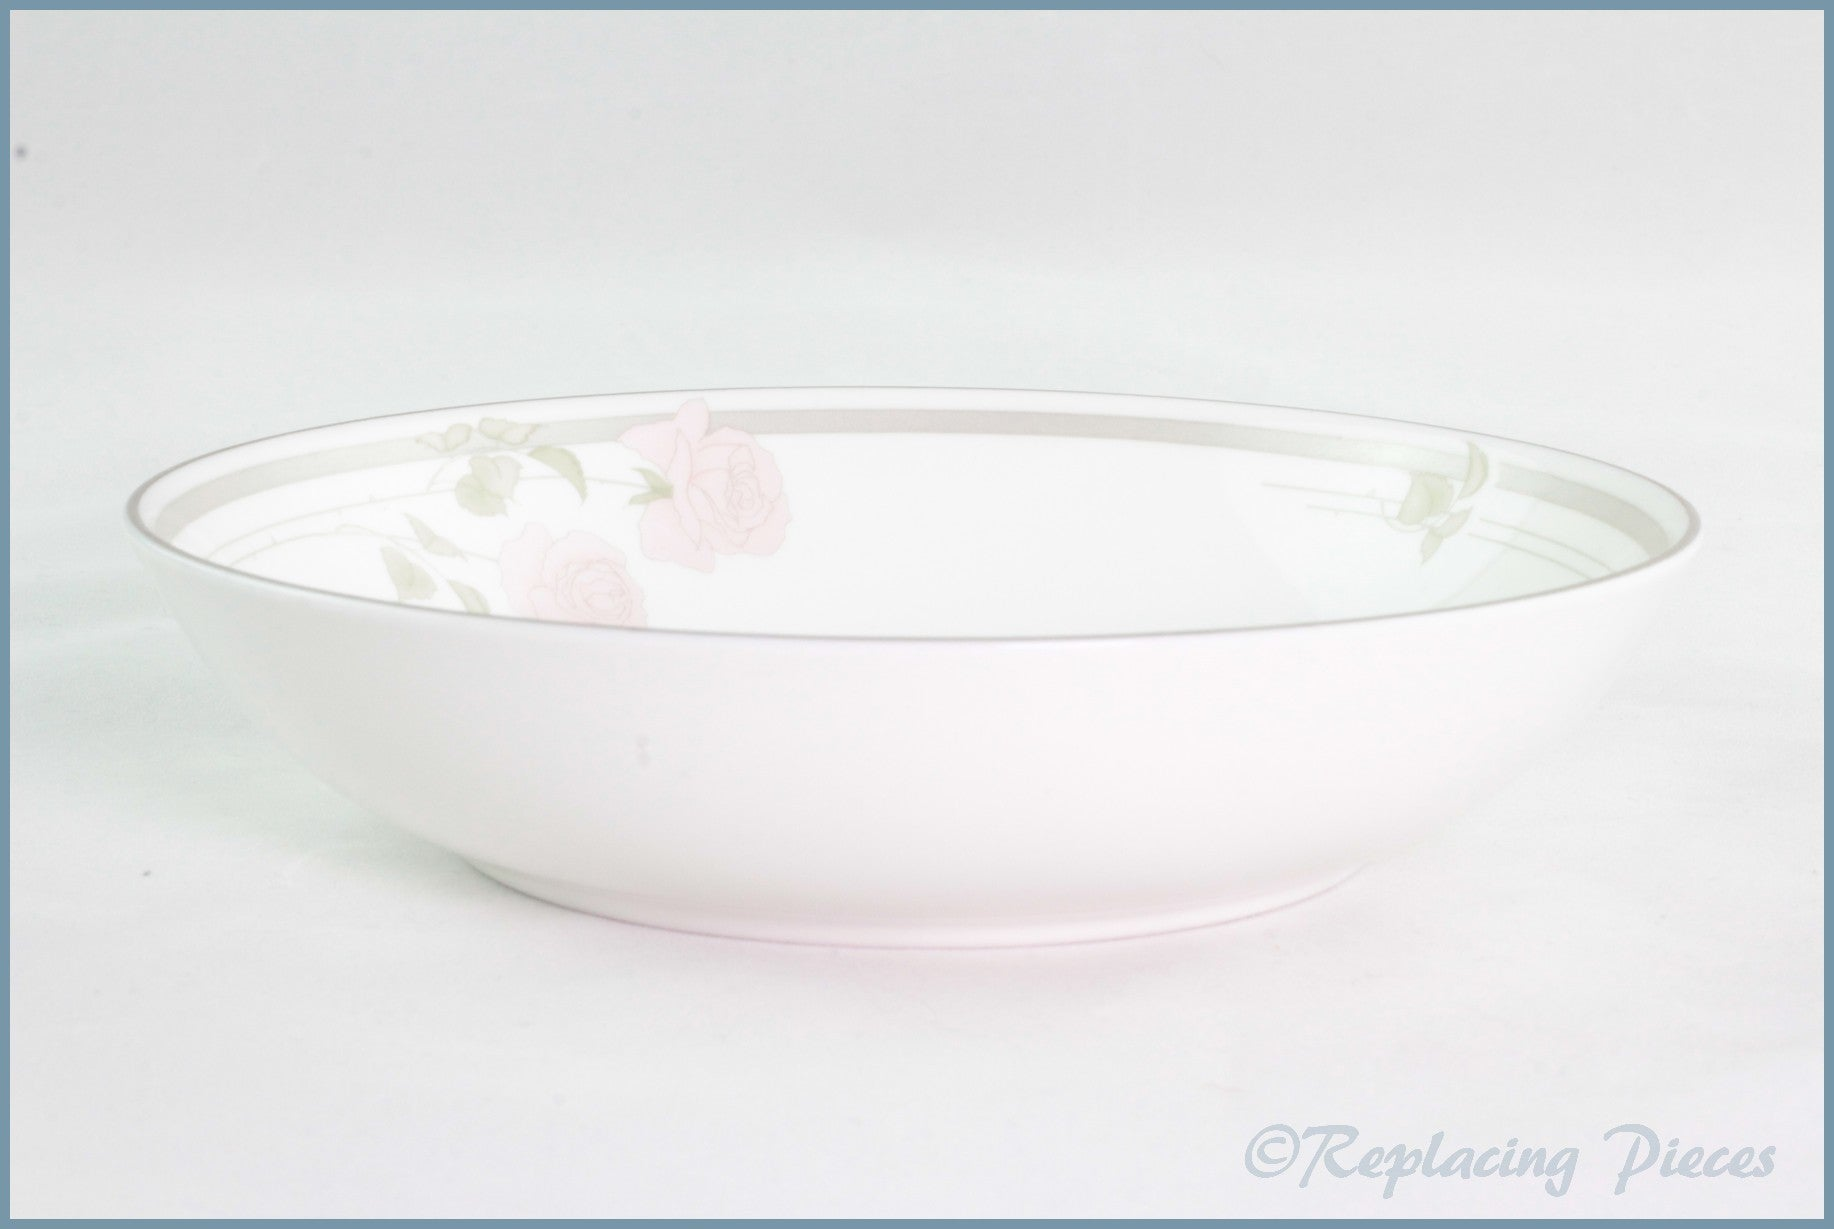 Royal Doulton - Twilight Rose (H5096) - Cereal Bowl